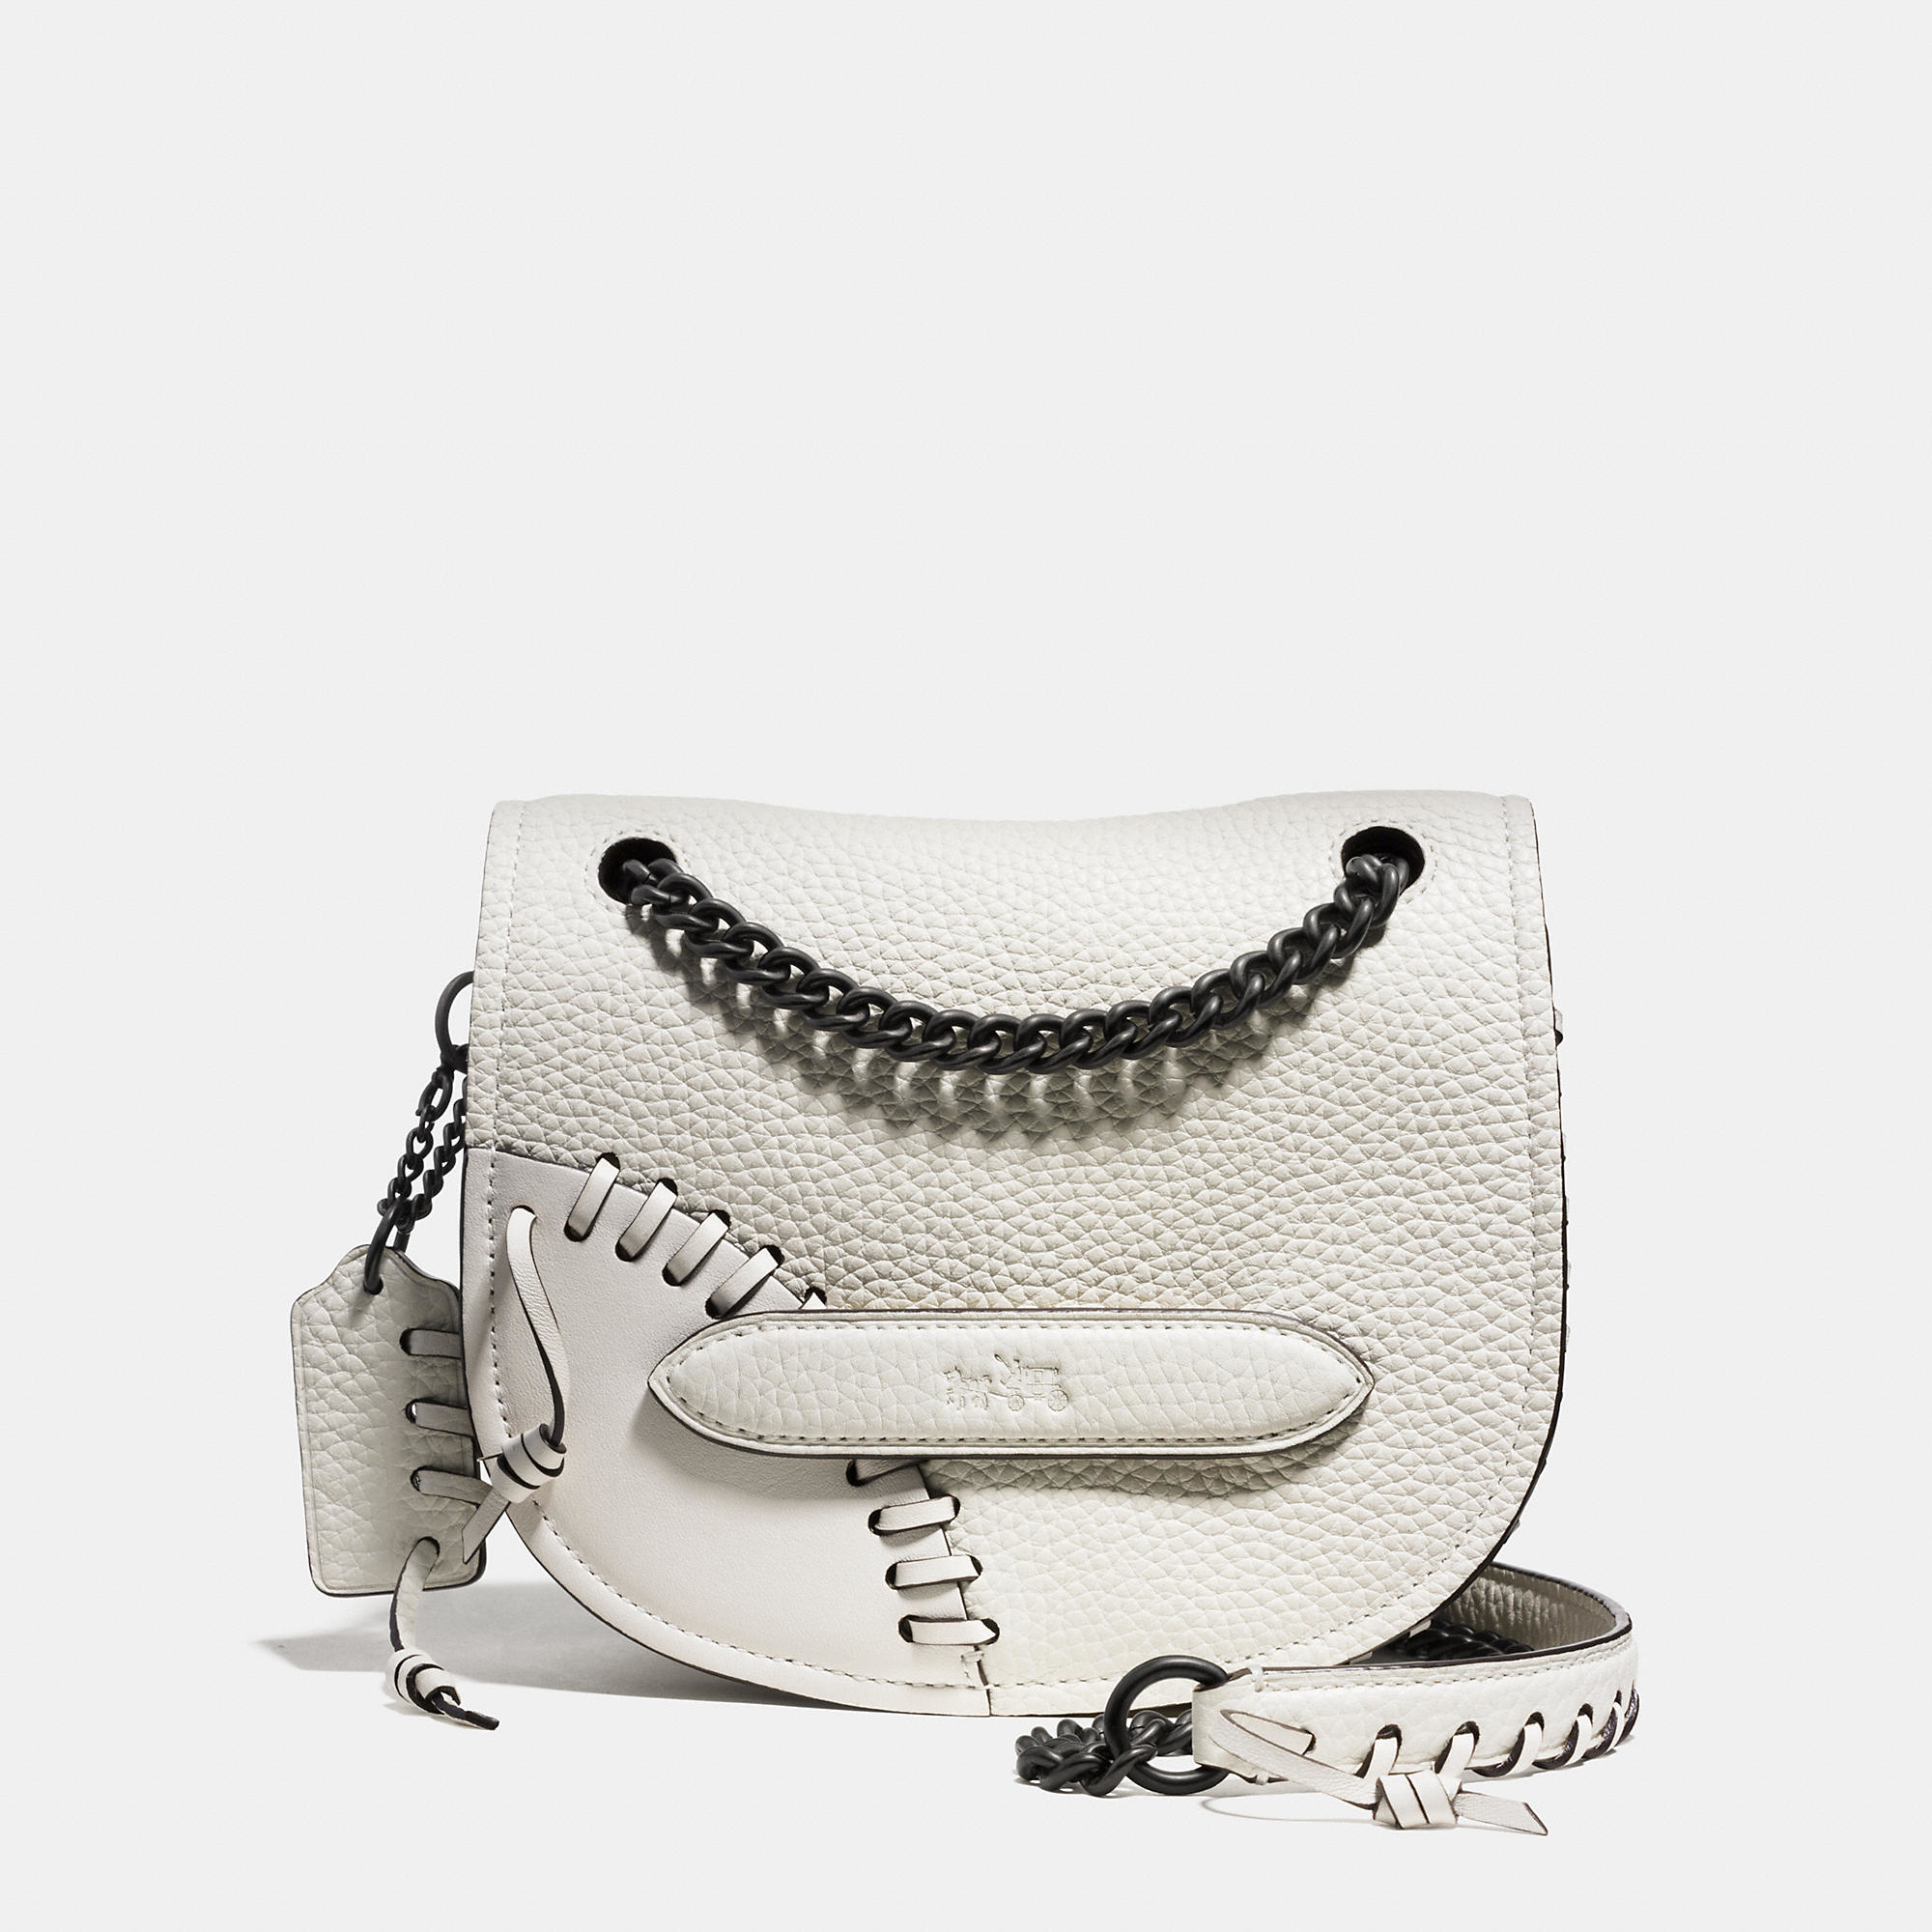 Lyst - COACH Rip And Repair Shadow Crossbody In Leather in White 03d3844fffa9c